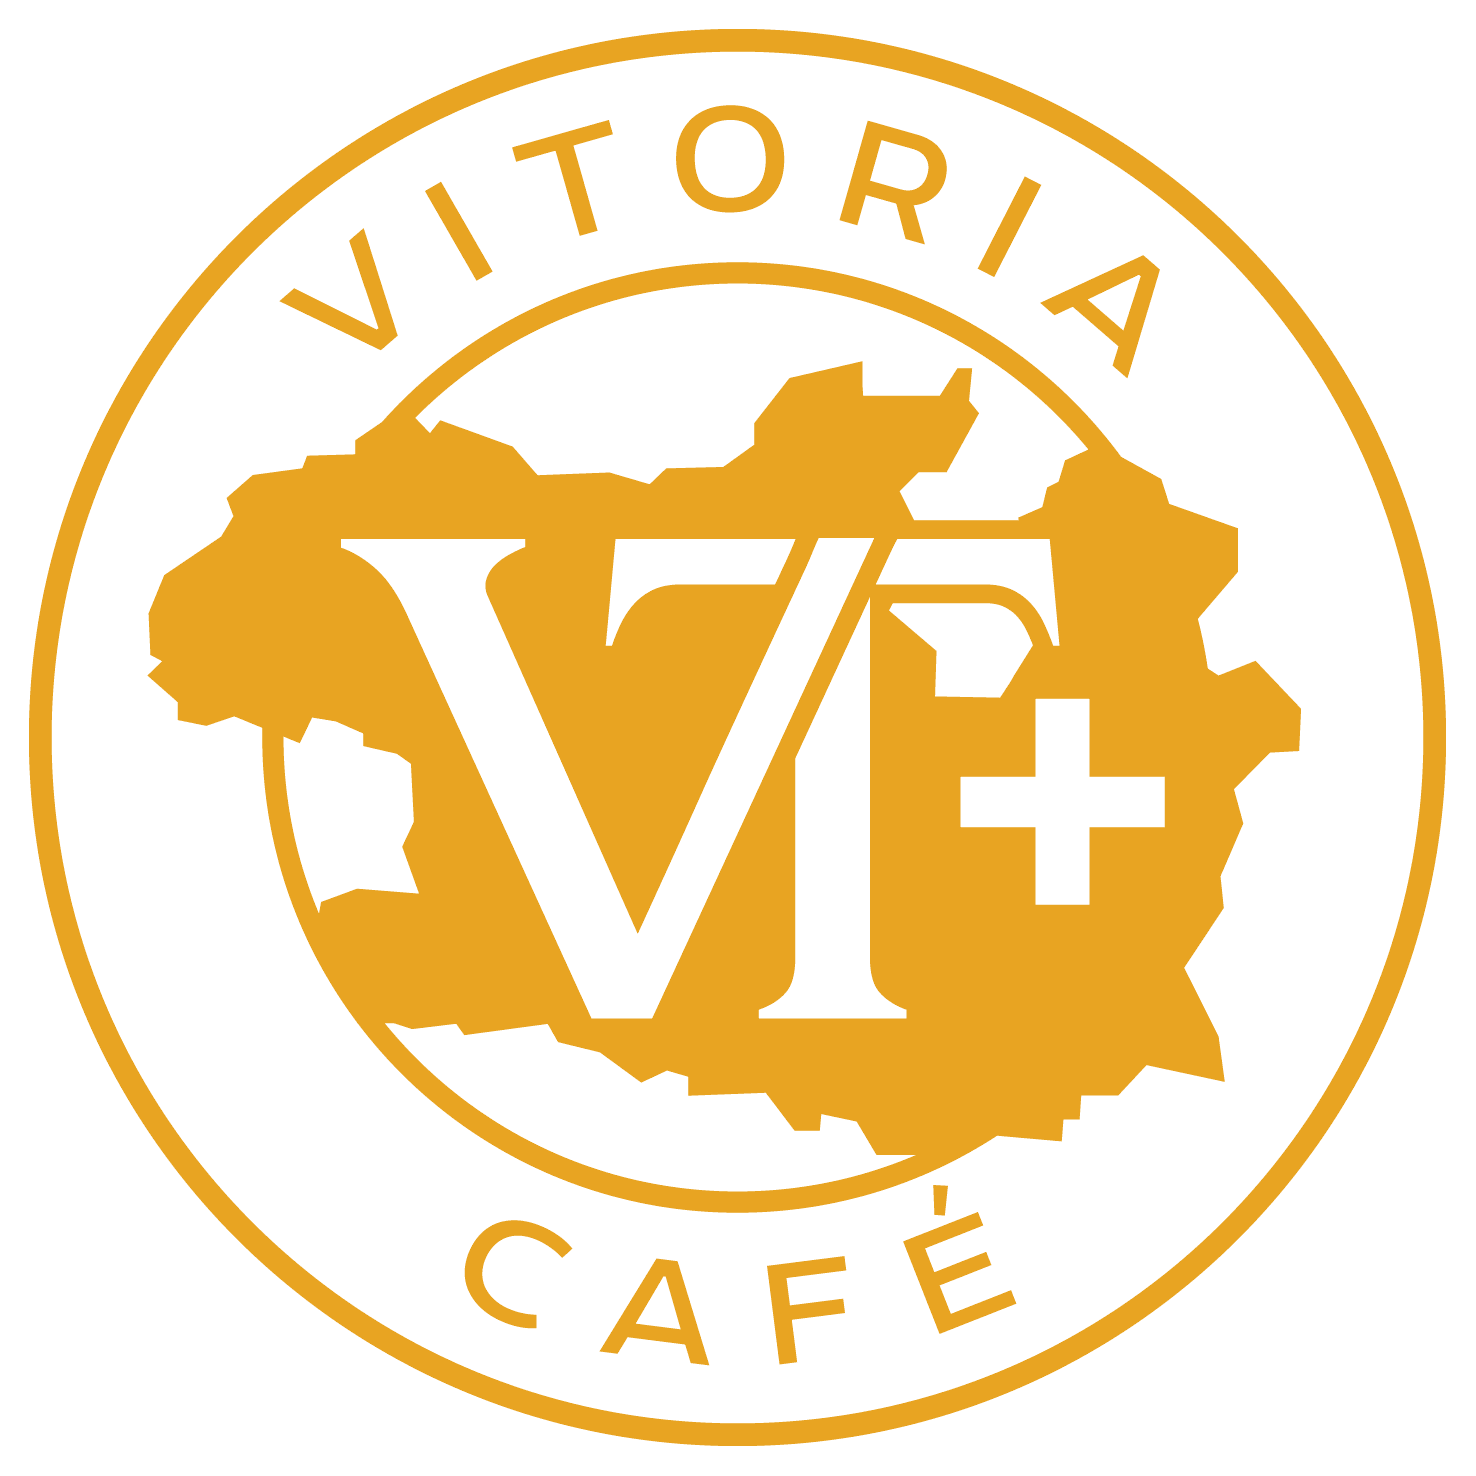 Create a modern and eye catch logo for a new coffee shop